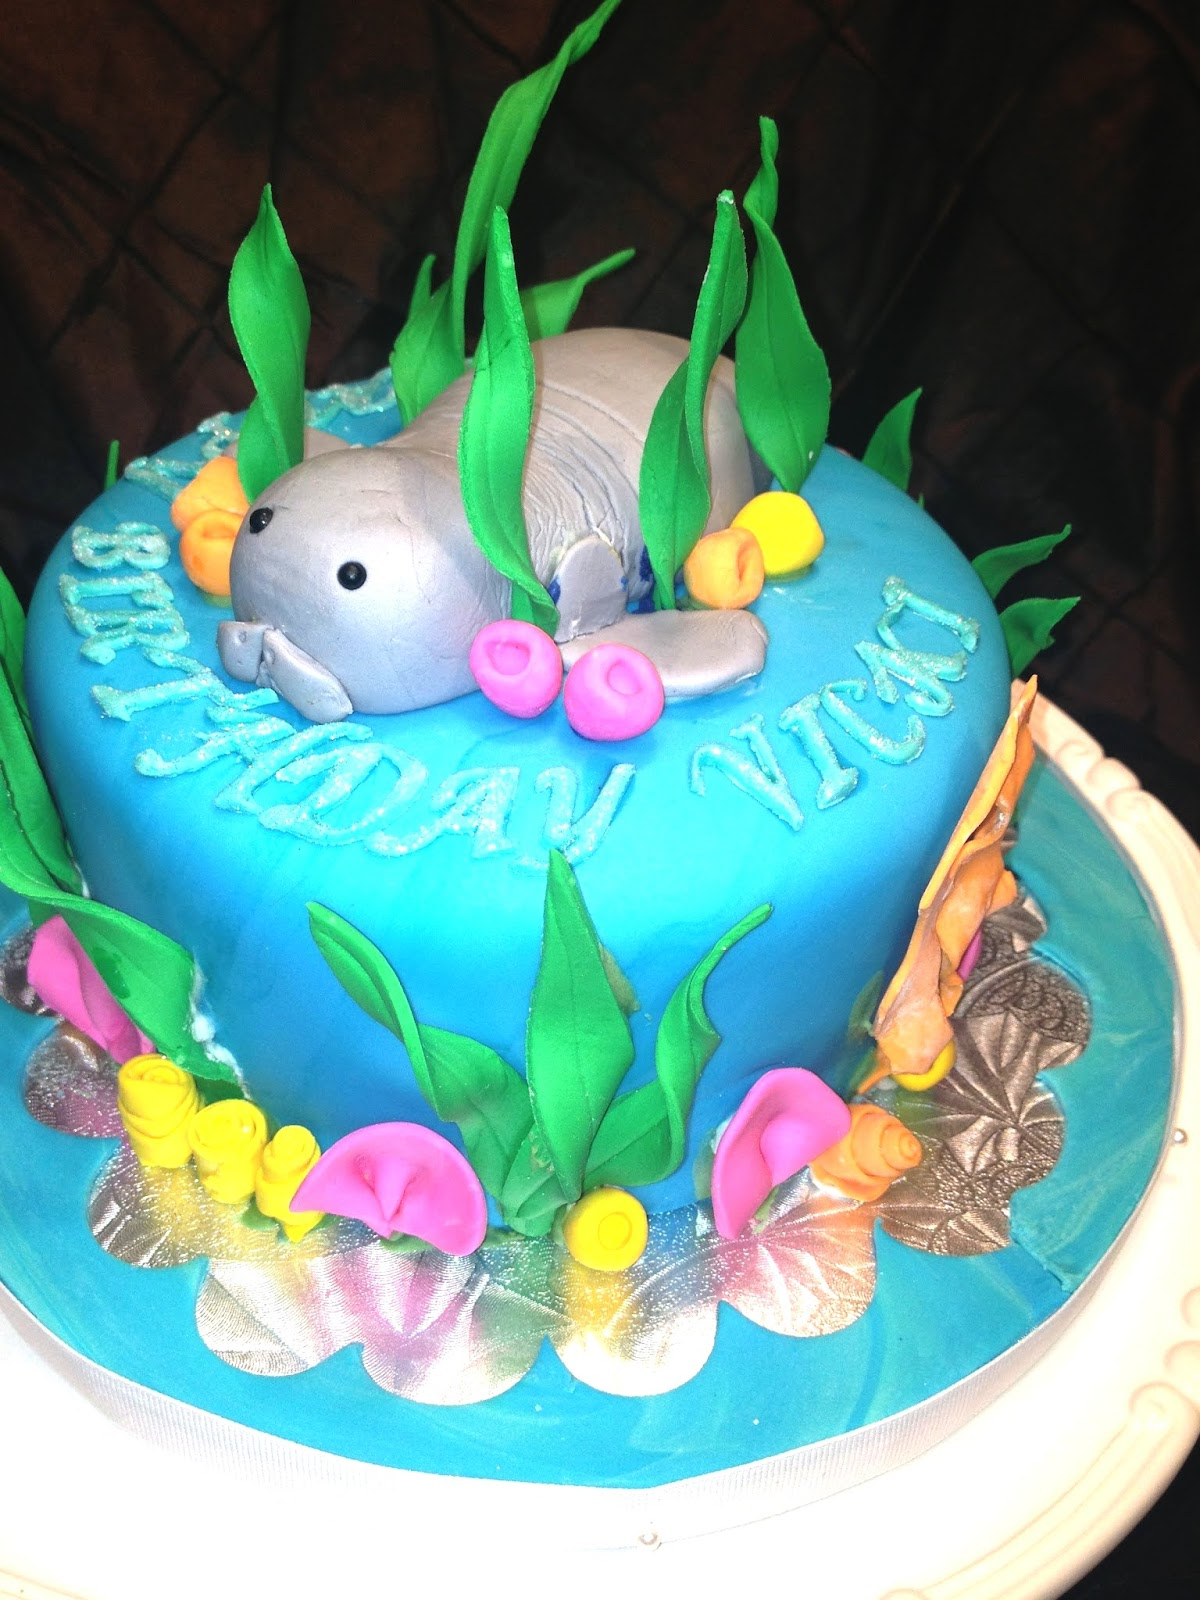 Birthday Cake Images With Name Vicky : Nancily s Cupcake Shack: Manatee Birthday Cake for Vicki